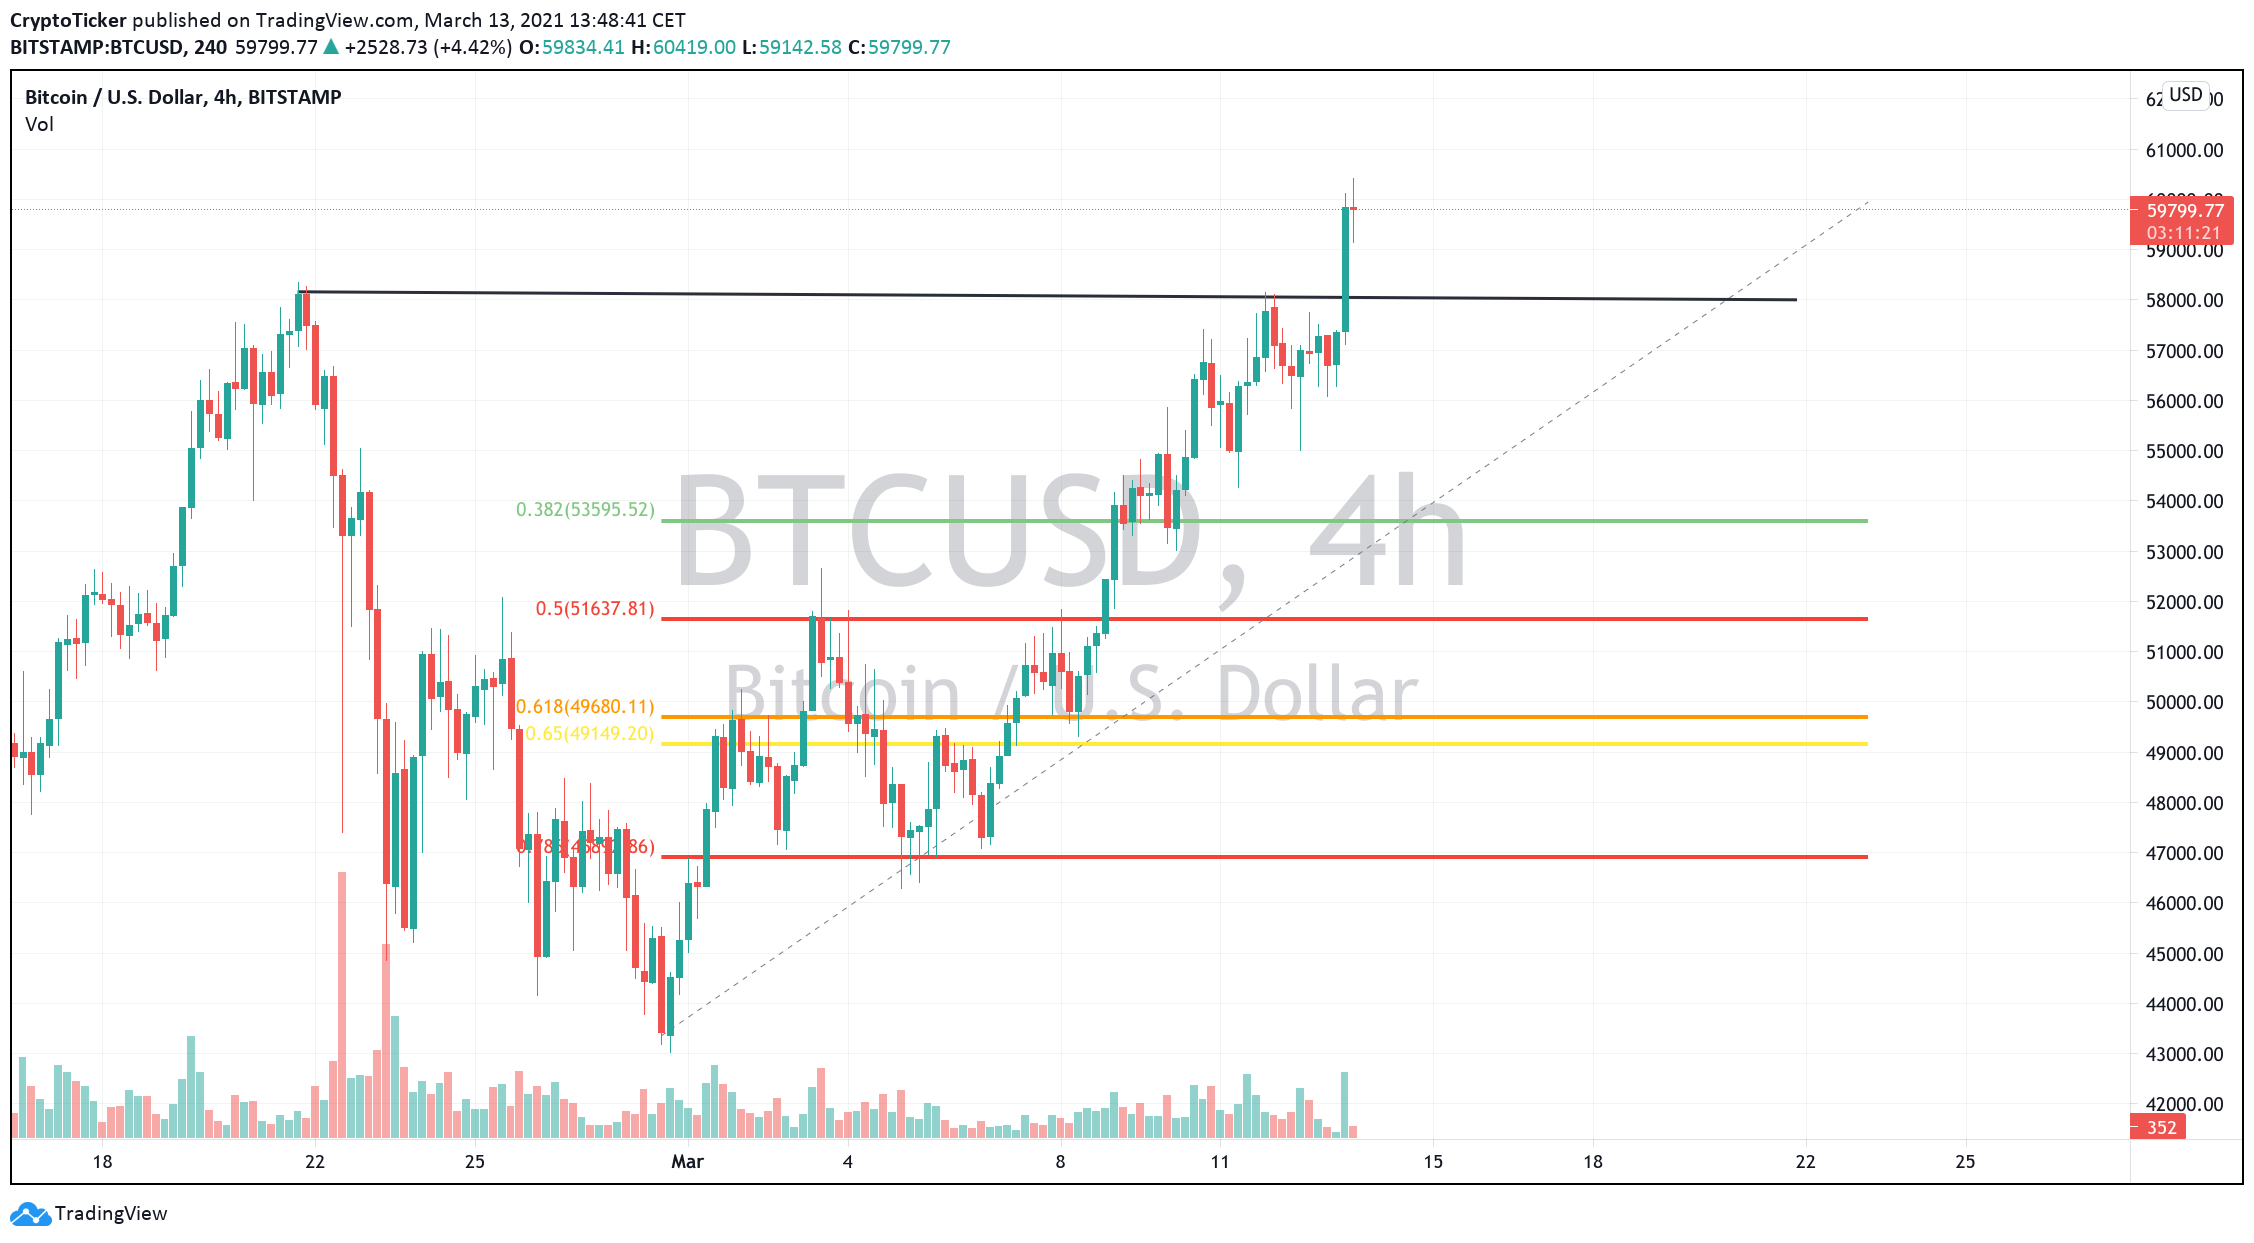 BTC/USD 4-hour chart showing potential retracement areas for Bitcoin Prices